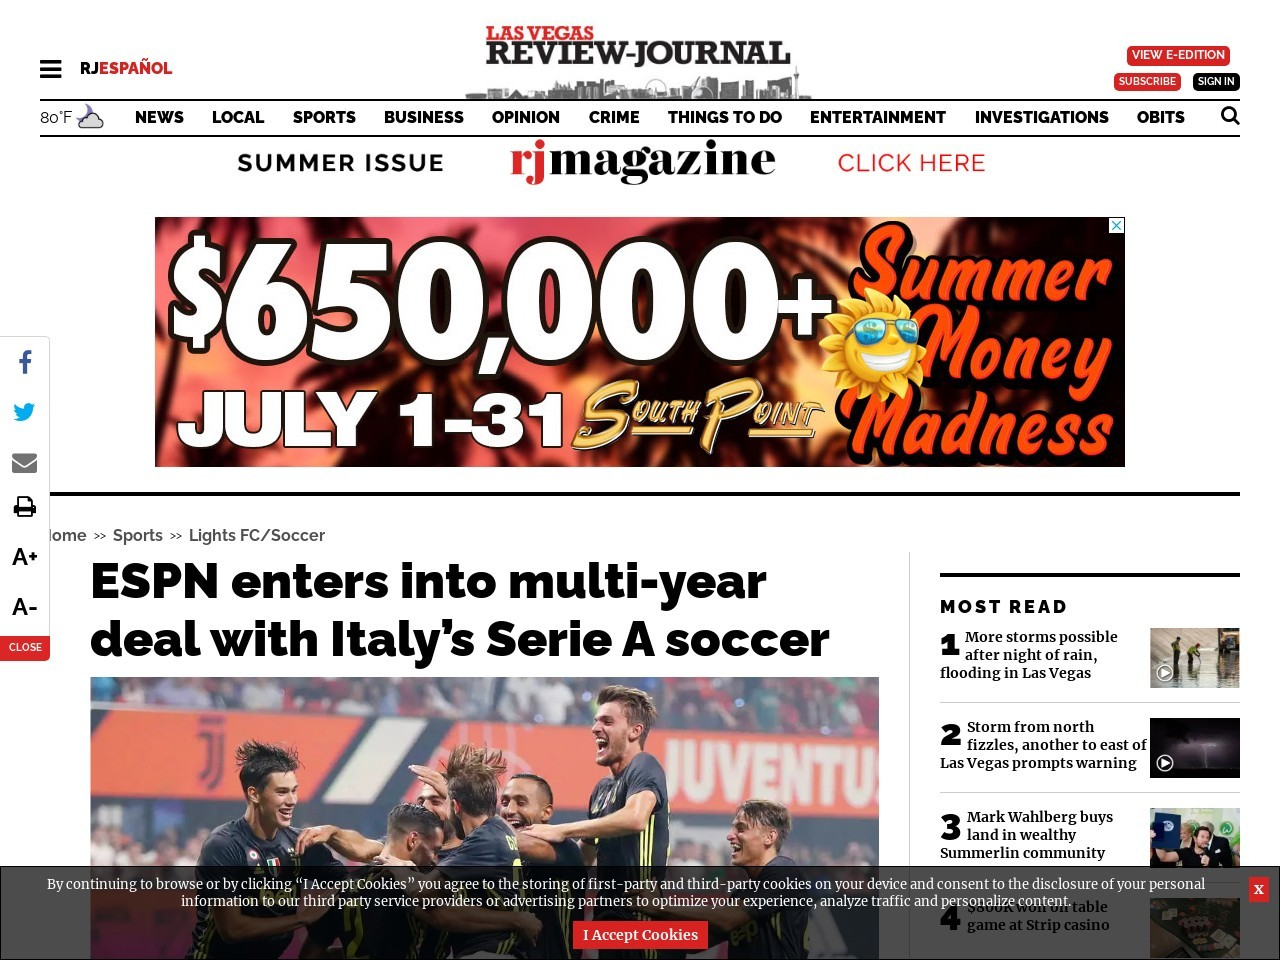 ESPN enters into multi-year deal with Italy's Serie A soccer